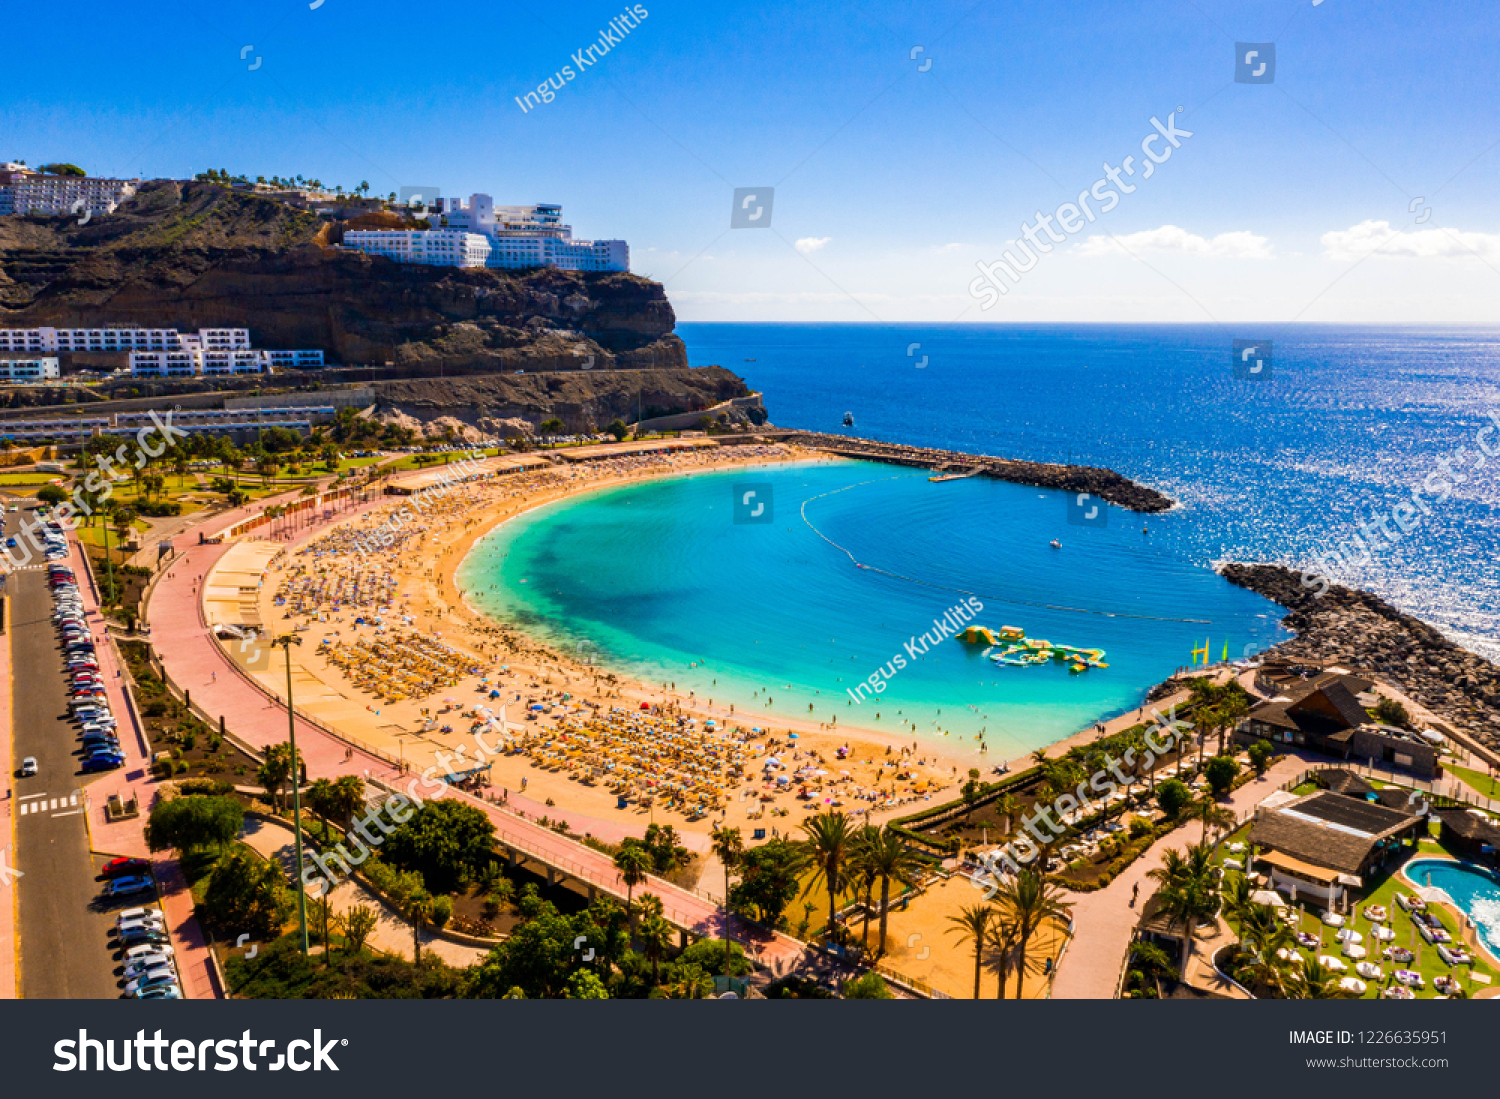 Aerial view of the Amadores beach on the Gran Canaria island in Spain. The most beautiful beach on the island. #1226635951